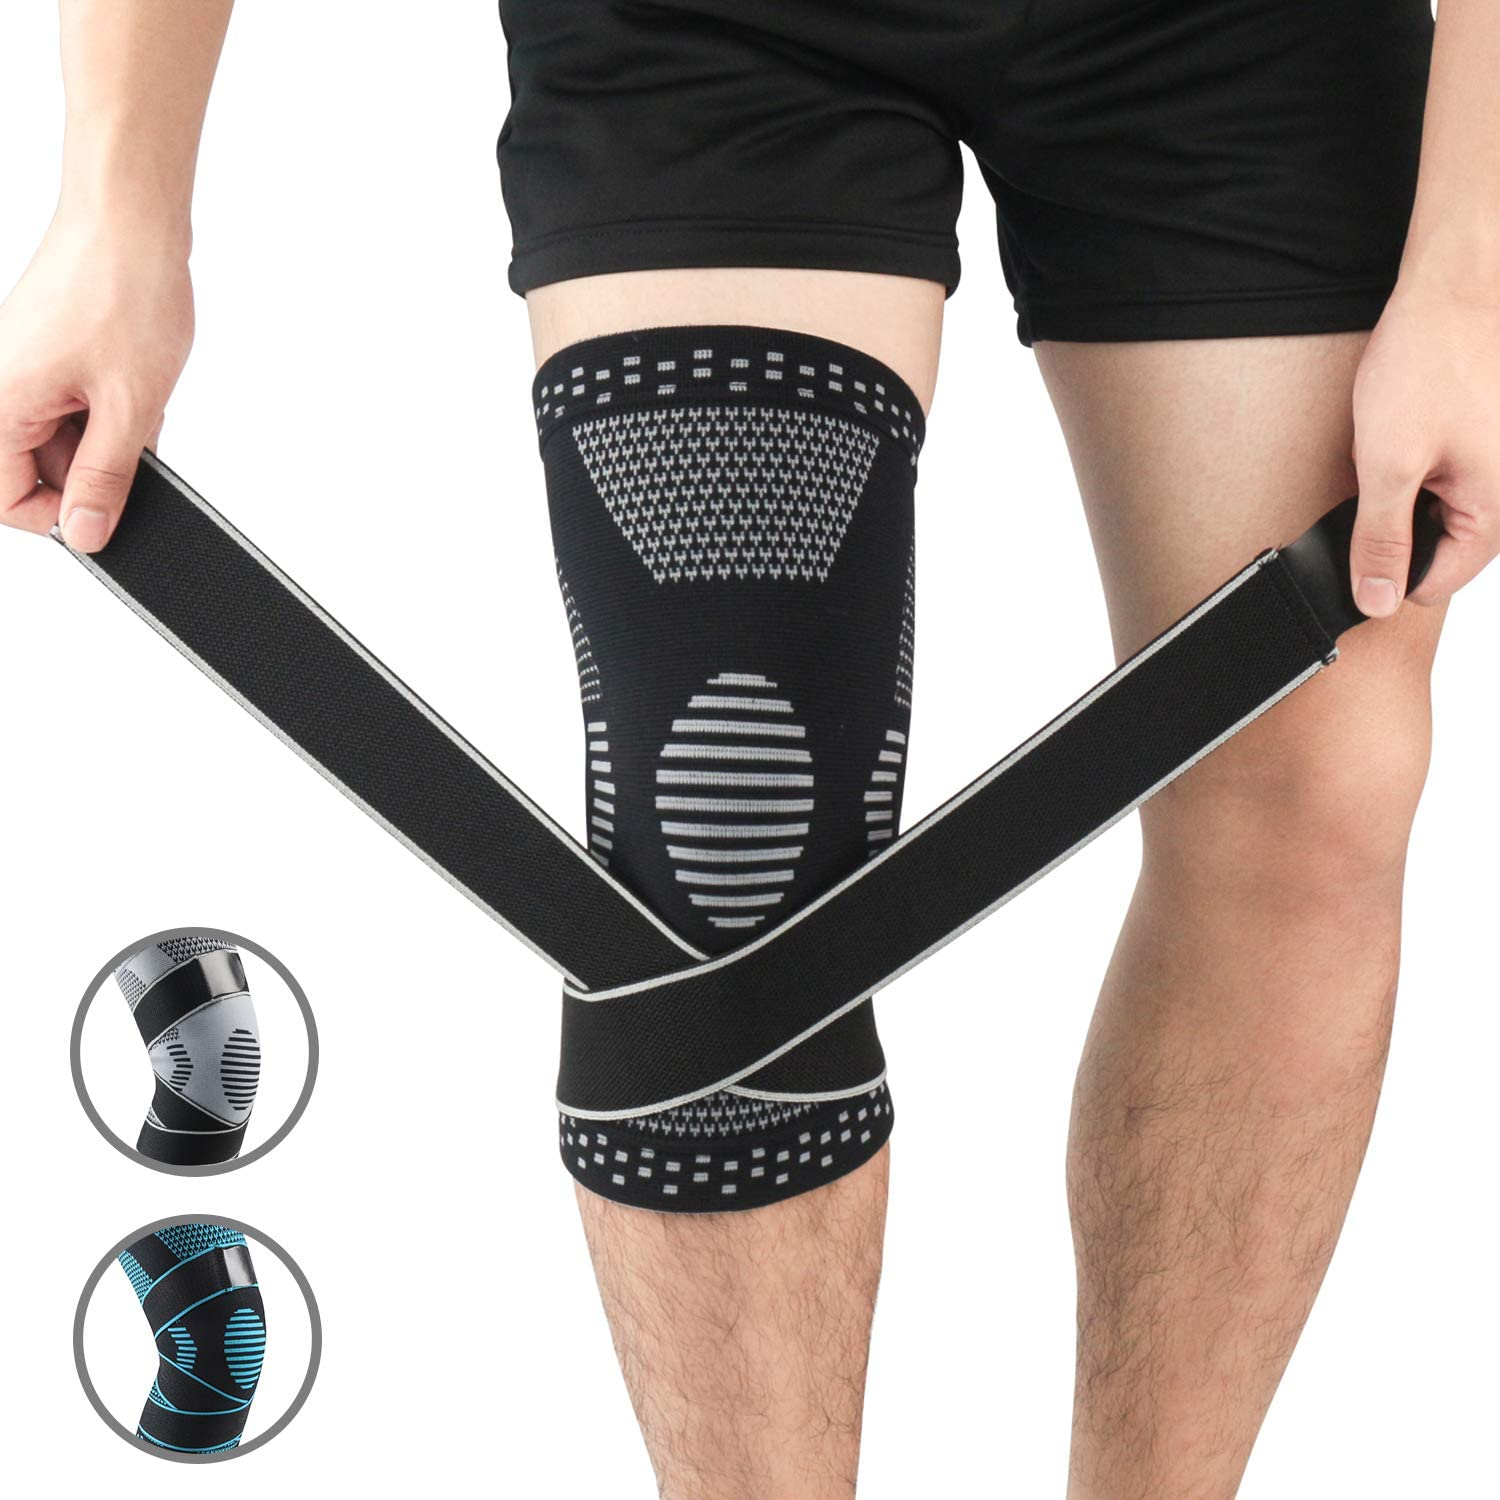 Injury Recovery Brace for Men and Women CrossFit Knee Compression Sleeve Support Running Joint Pain Relief Great Pads for any Exercise /& Sport Meniscus Tear Arthritis Basketball Jogging